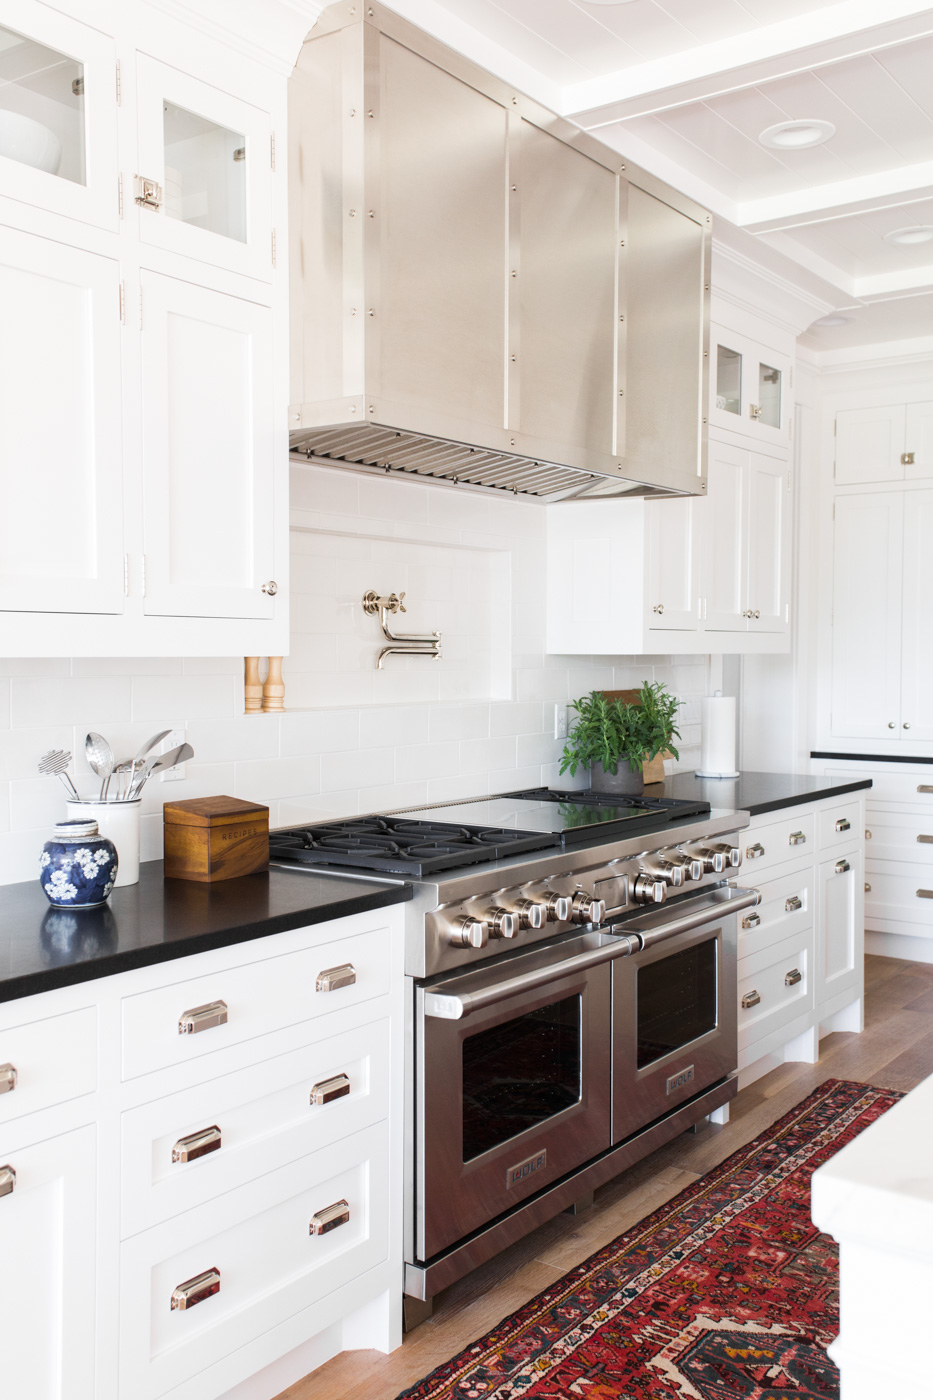 Vintage+kitchen+runner,+black+white+counters,+and+niche+behind+stove+||+Studio+McGee.jpg